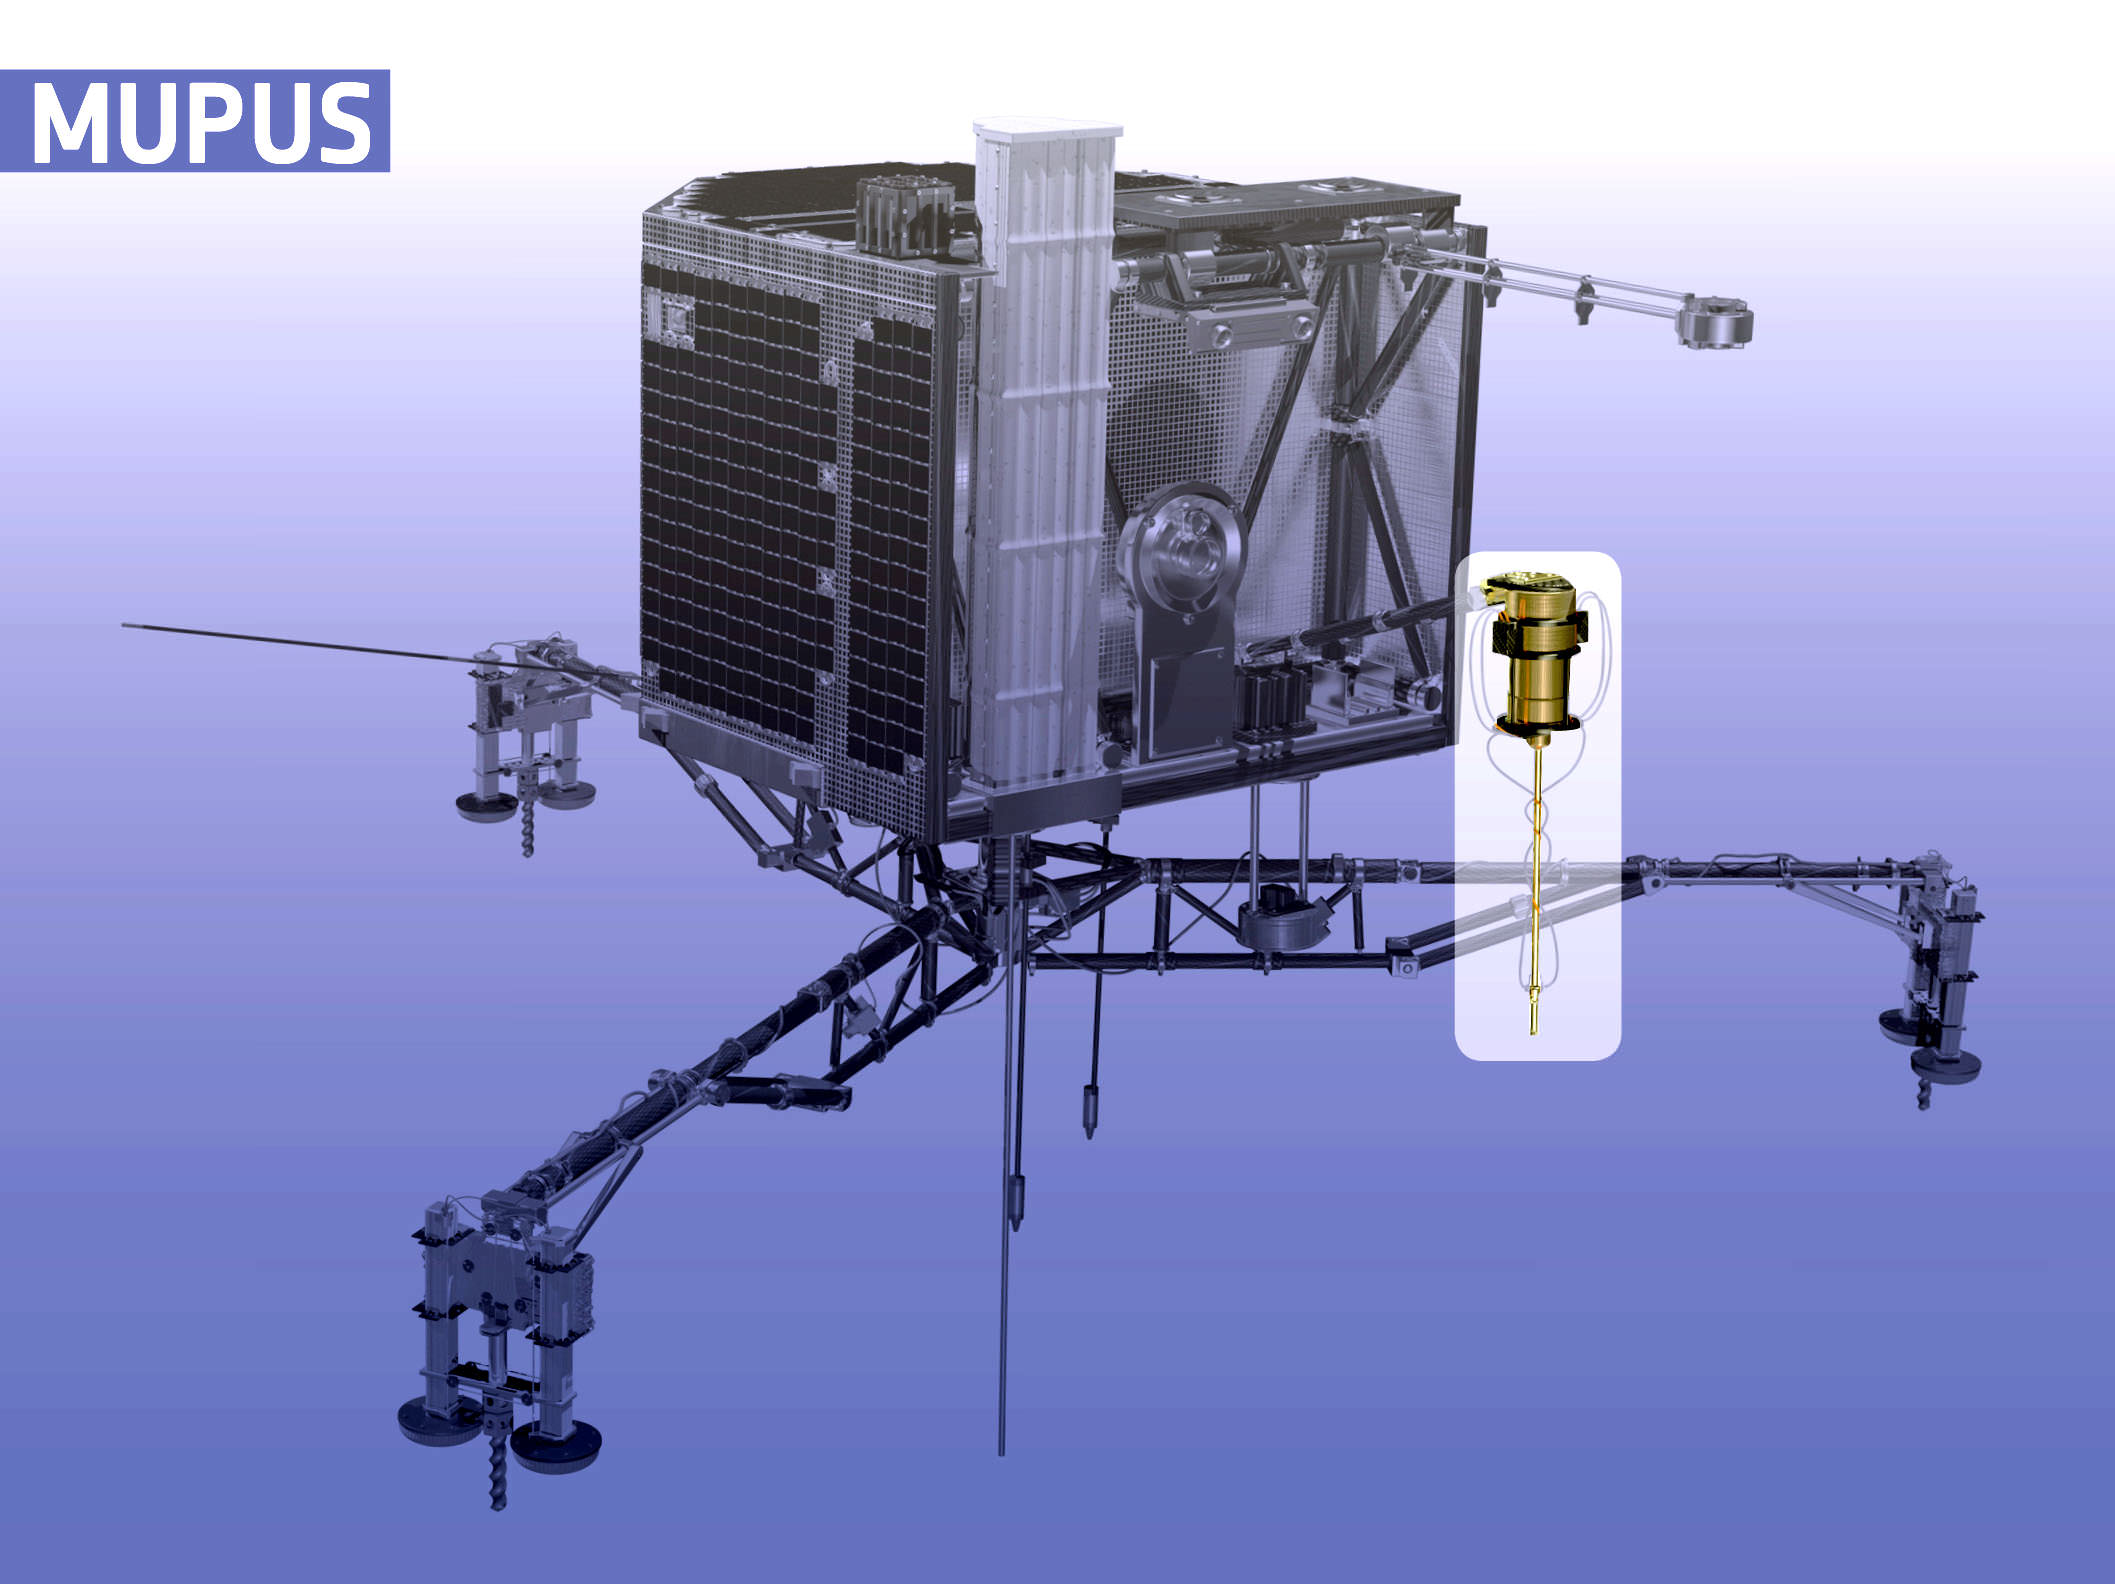 Philae's MUPUS probe took temperature measurements and hammered into the surface at the landing site to discover the lander alighted on some very hard ice. Credit: ESA